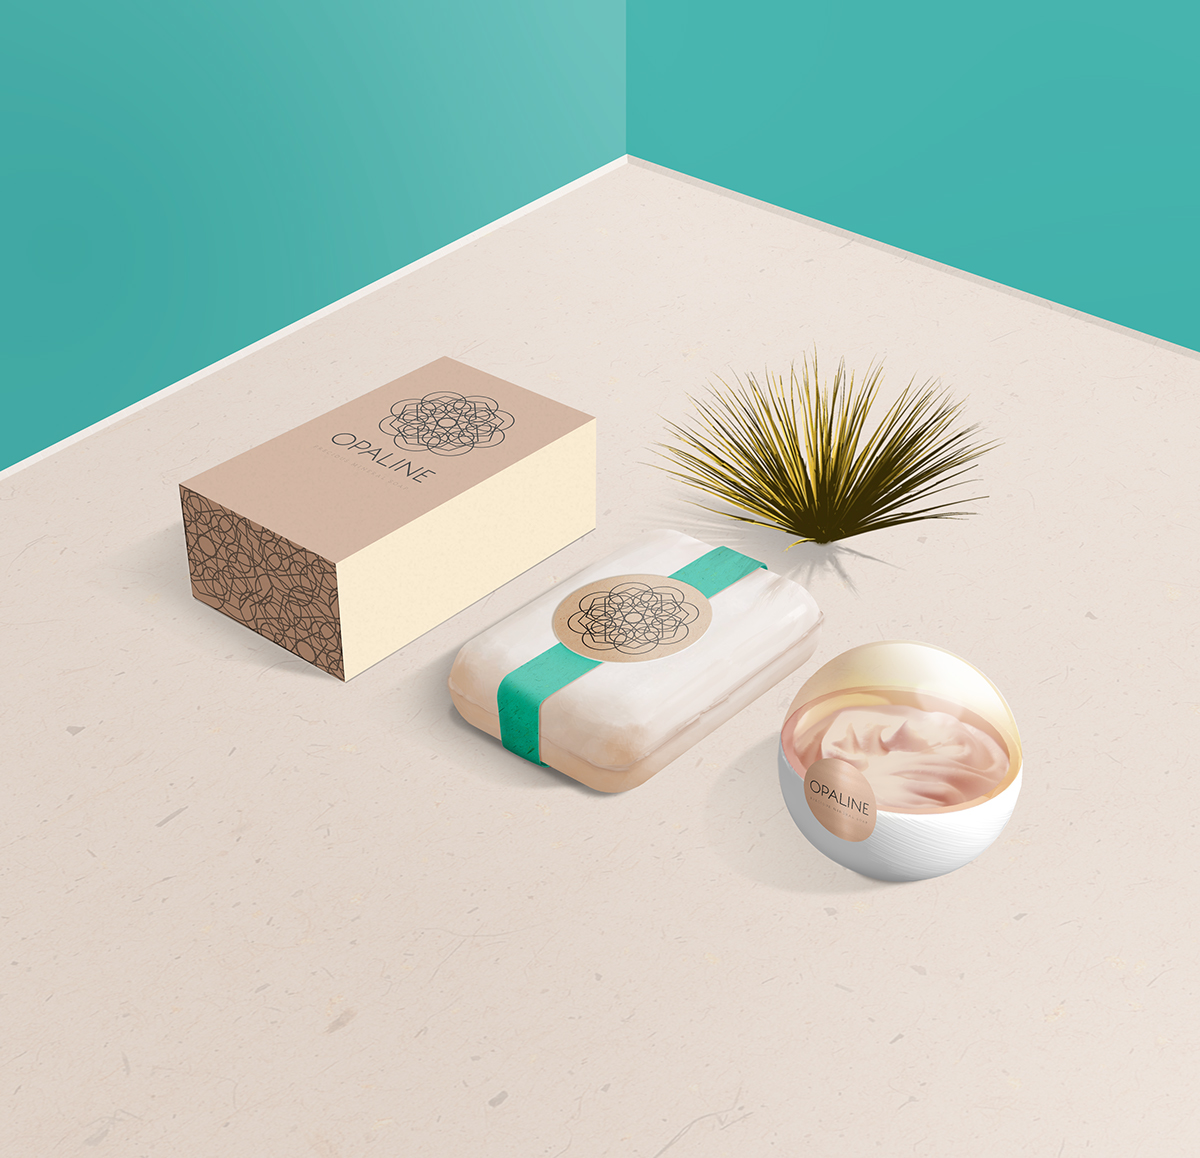 Free Cosmetic Brand Display Mockup